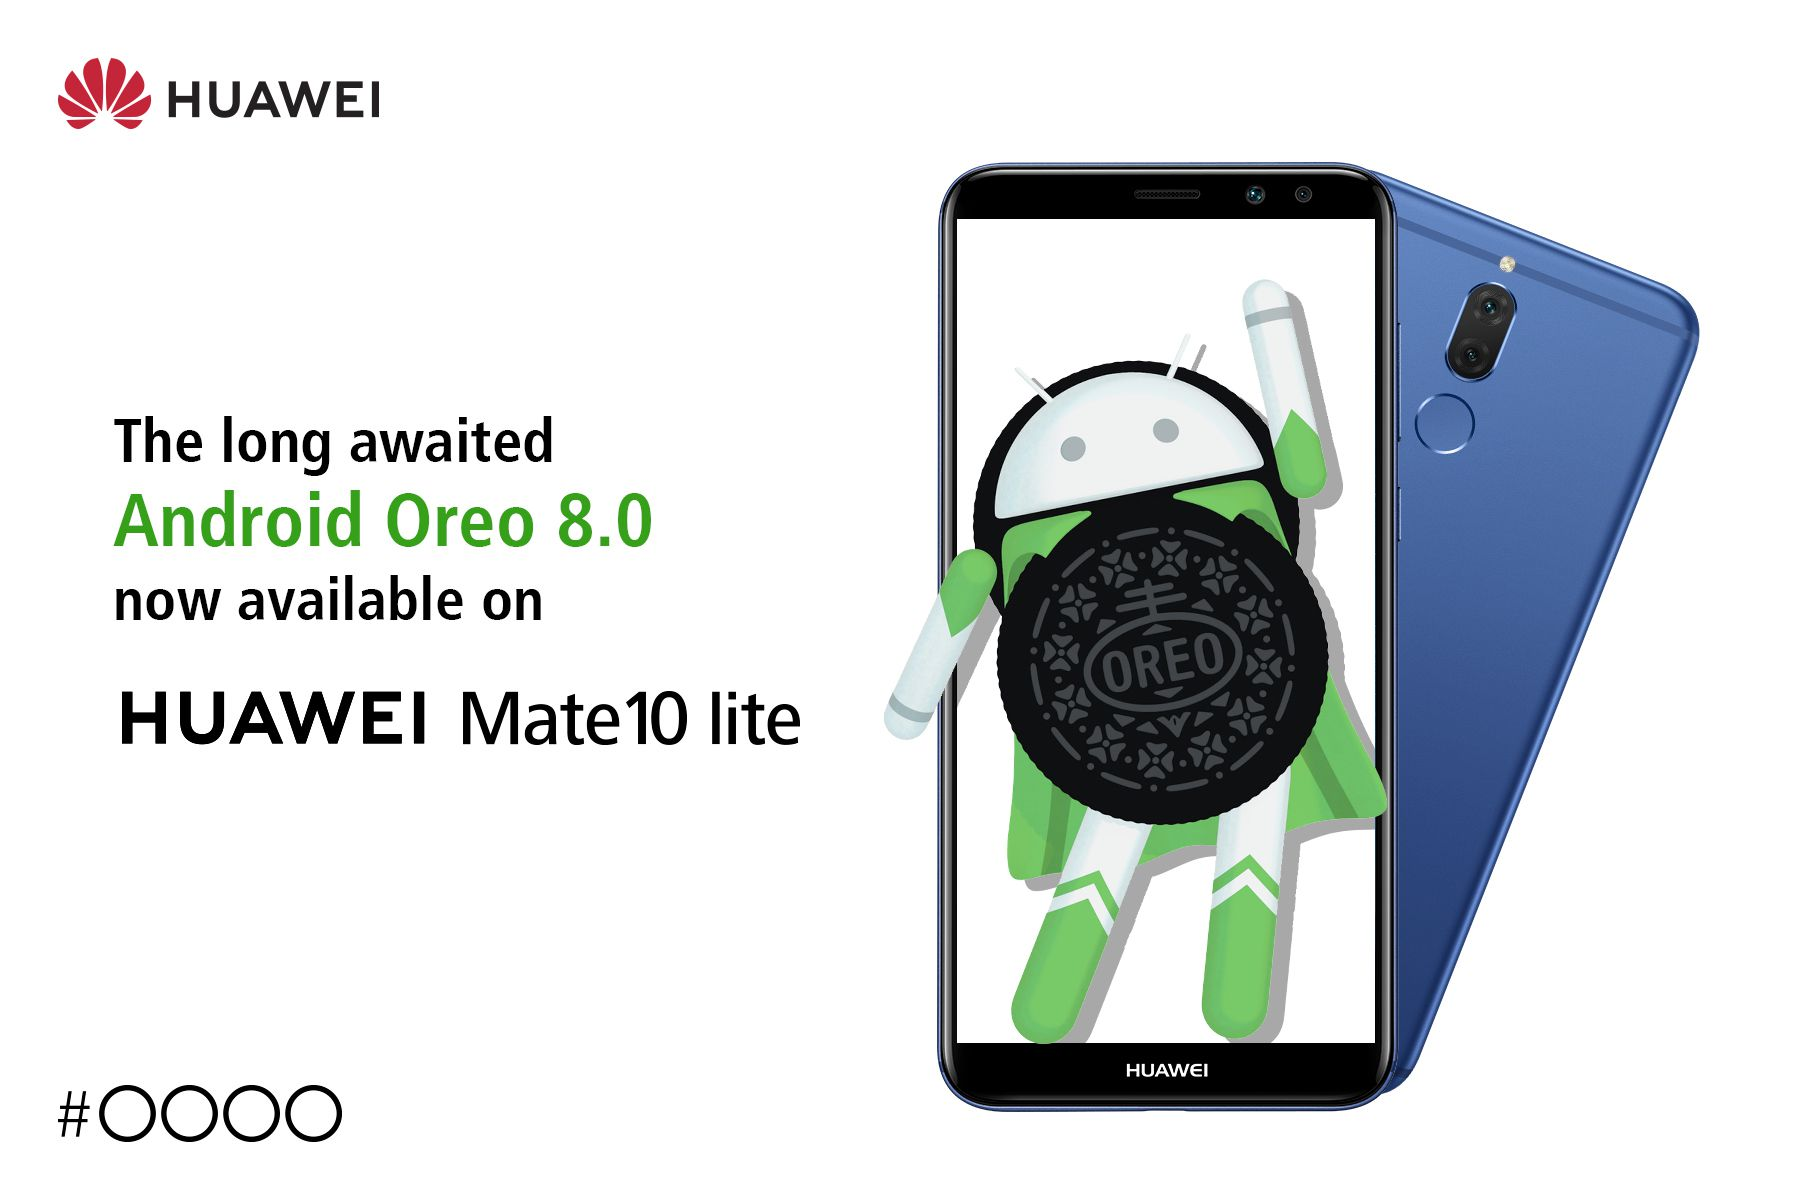 HUAWEI Mate 10 lite gets EMUI 8.0 with Android Oreo 8.0